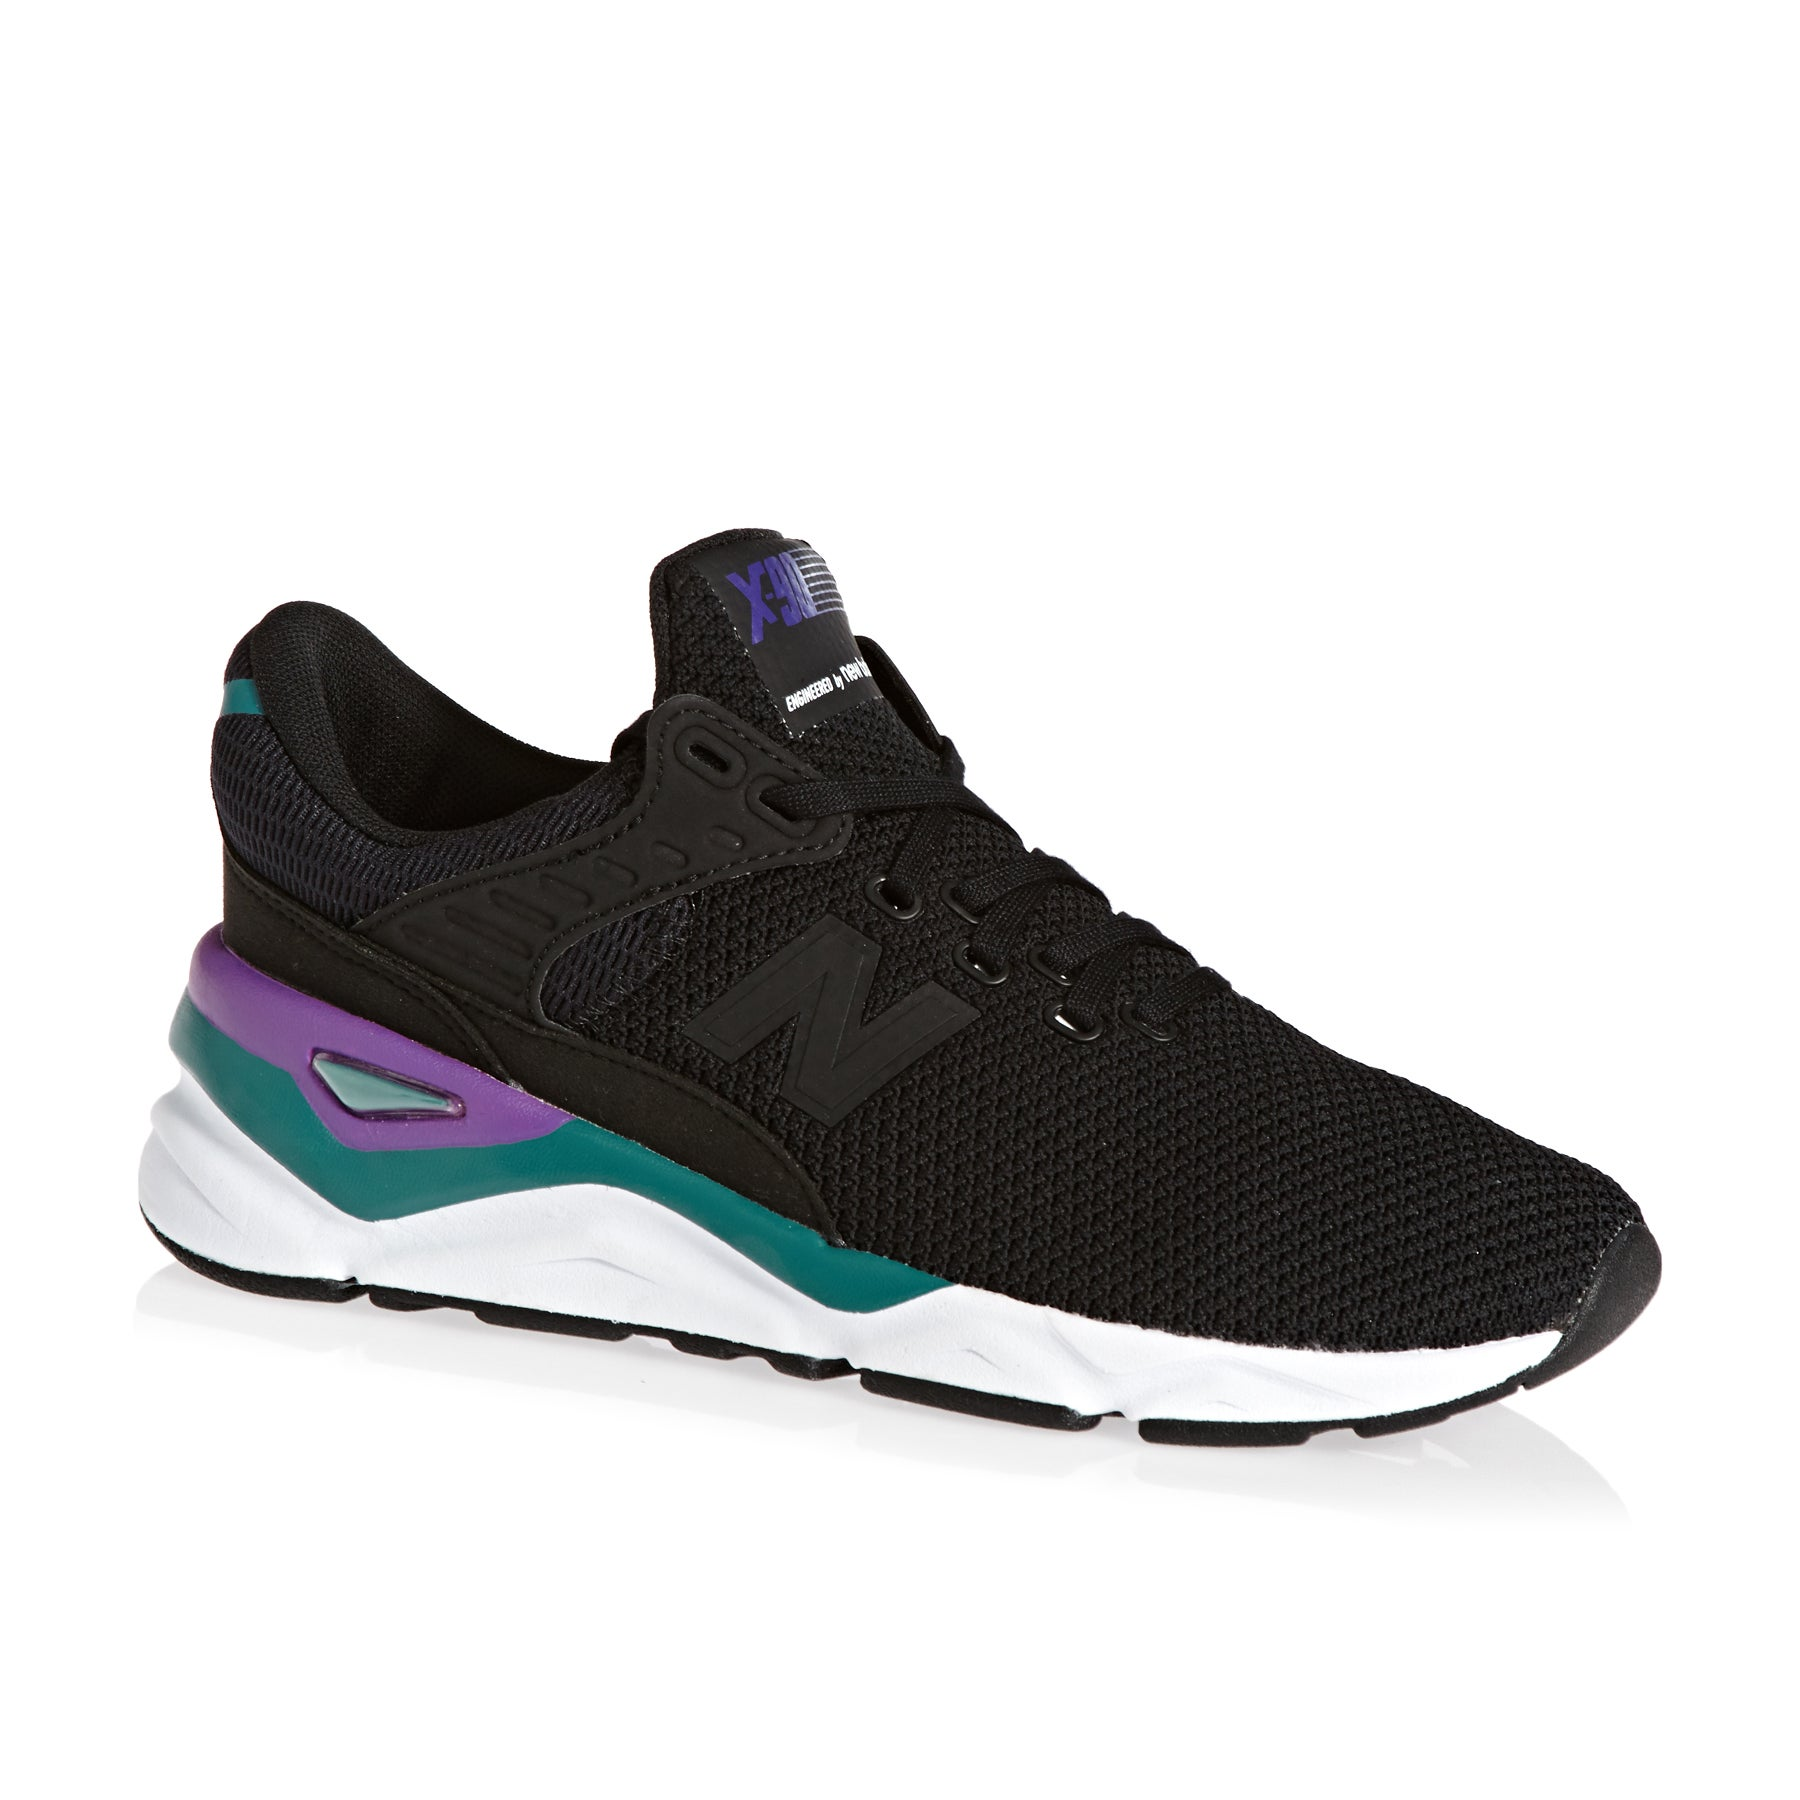 New Balance Wsx90 Womens Shoes - Phantom (093)